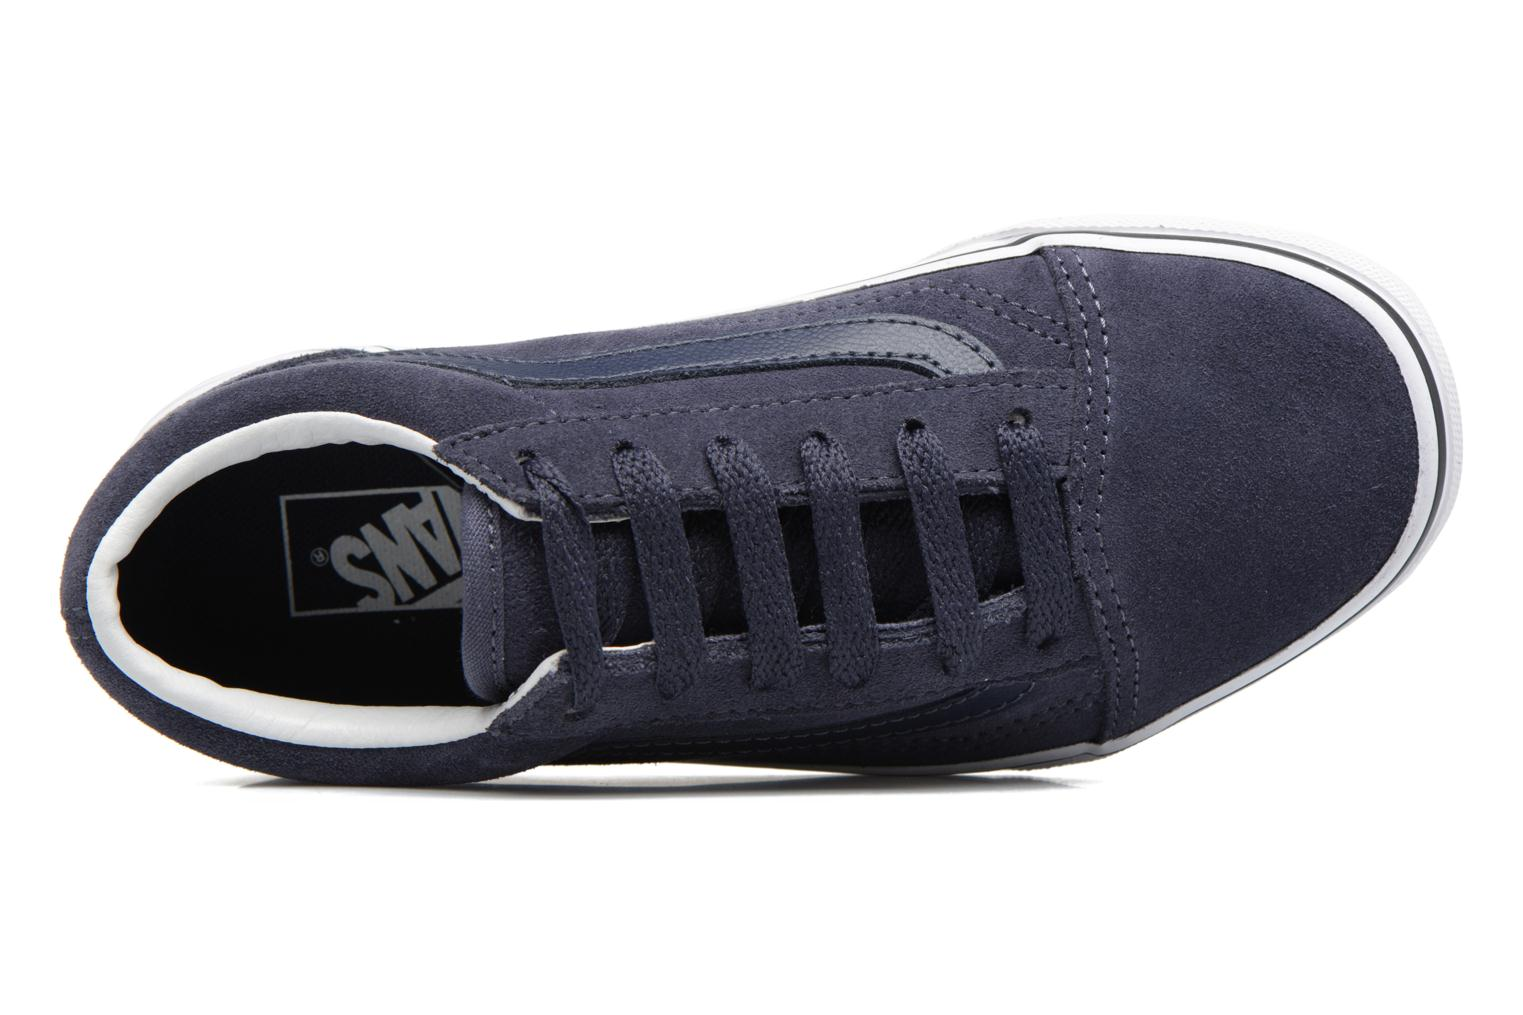 Old Skool E (Suede) Parisian Night